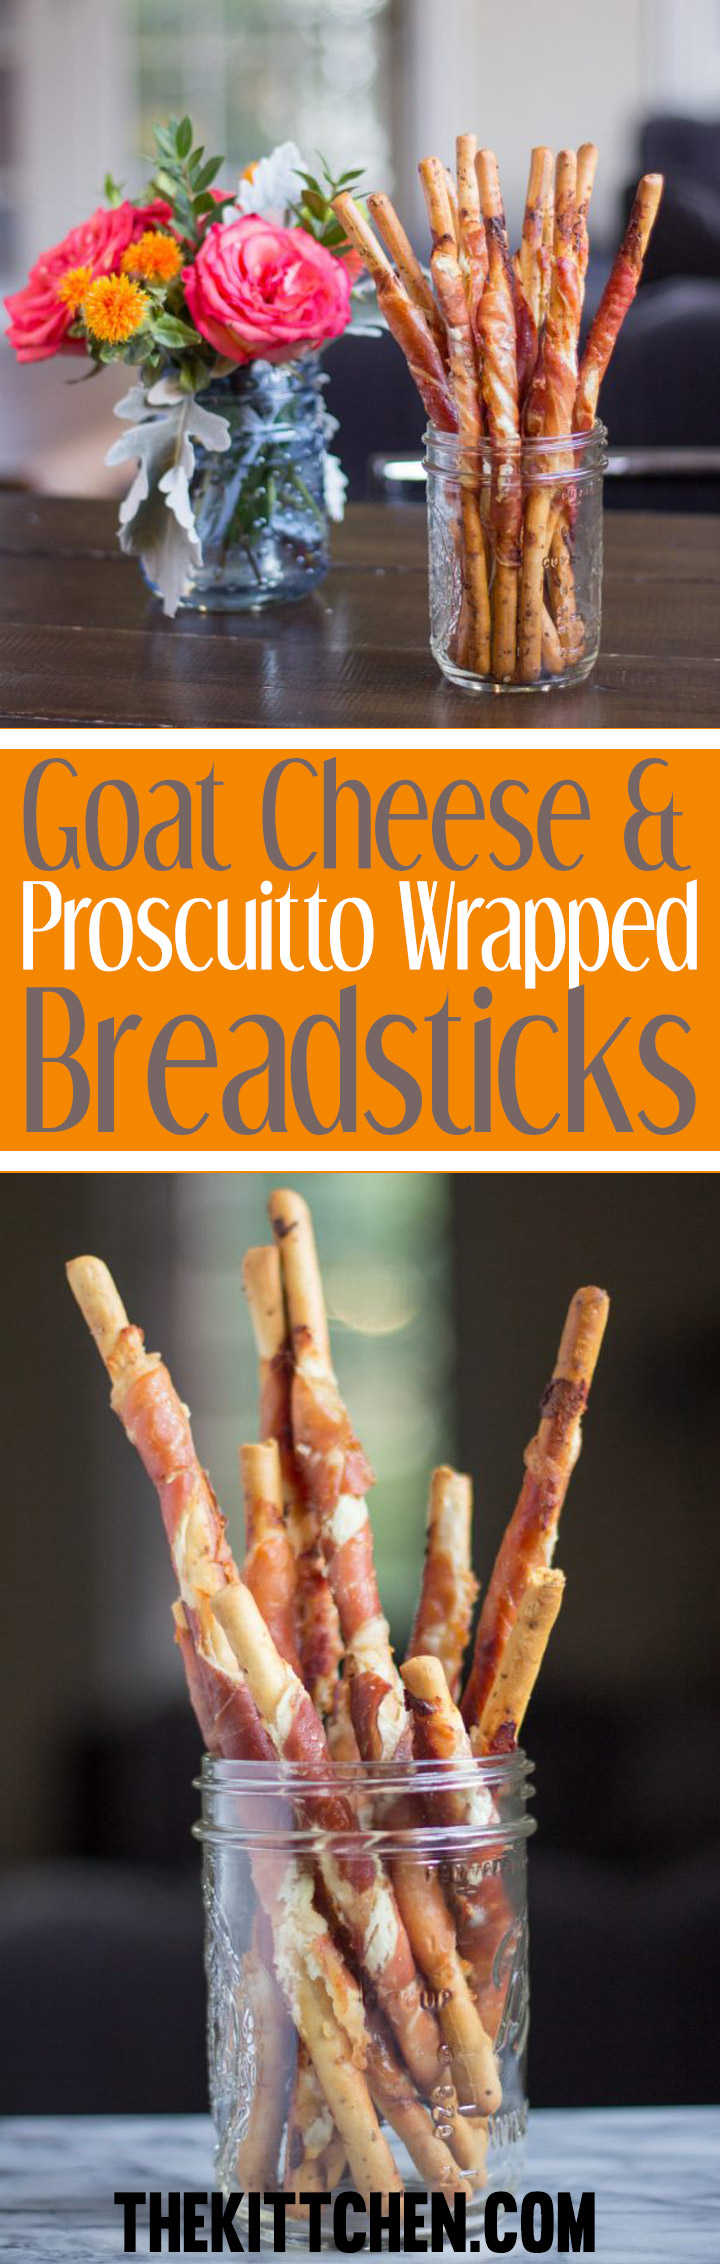 Goat Cheese and Prosciutto Wrapped Breadsticks are an simple three ingredient recipe for an appetizer that I can't stop eating.